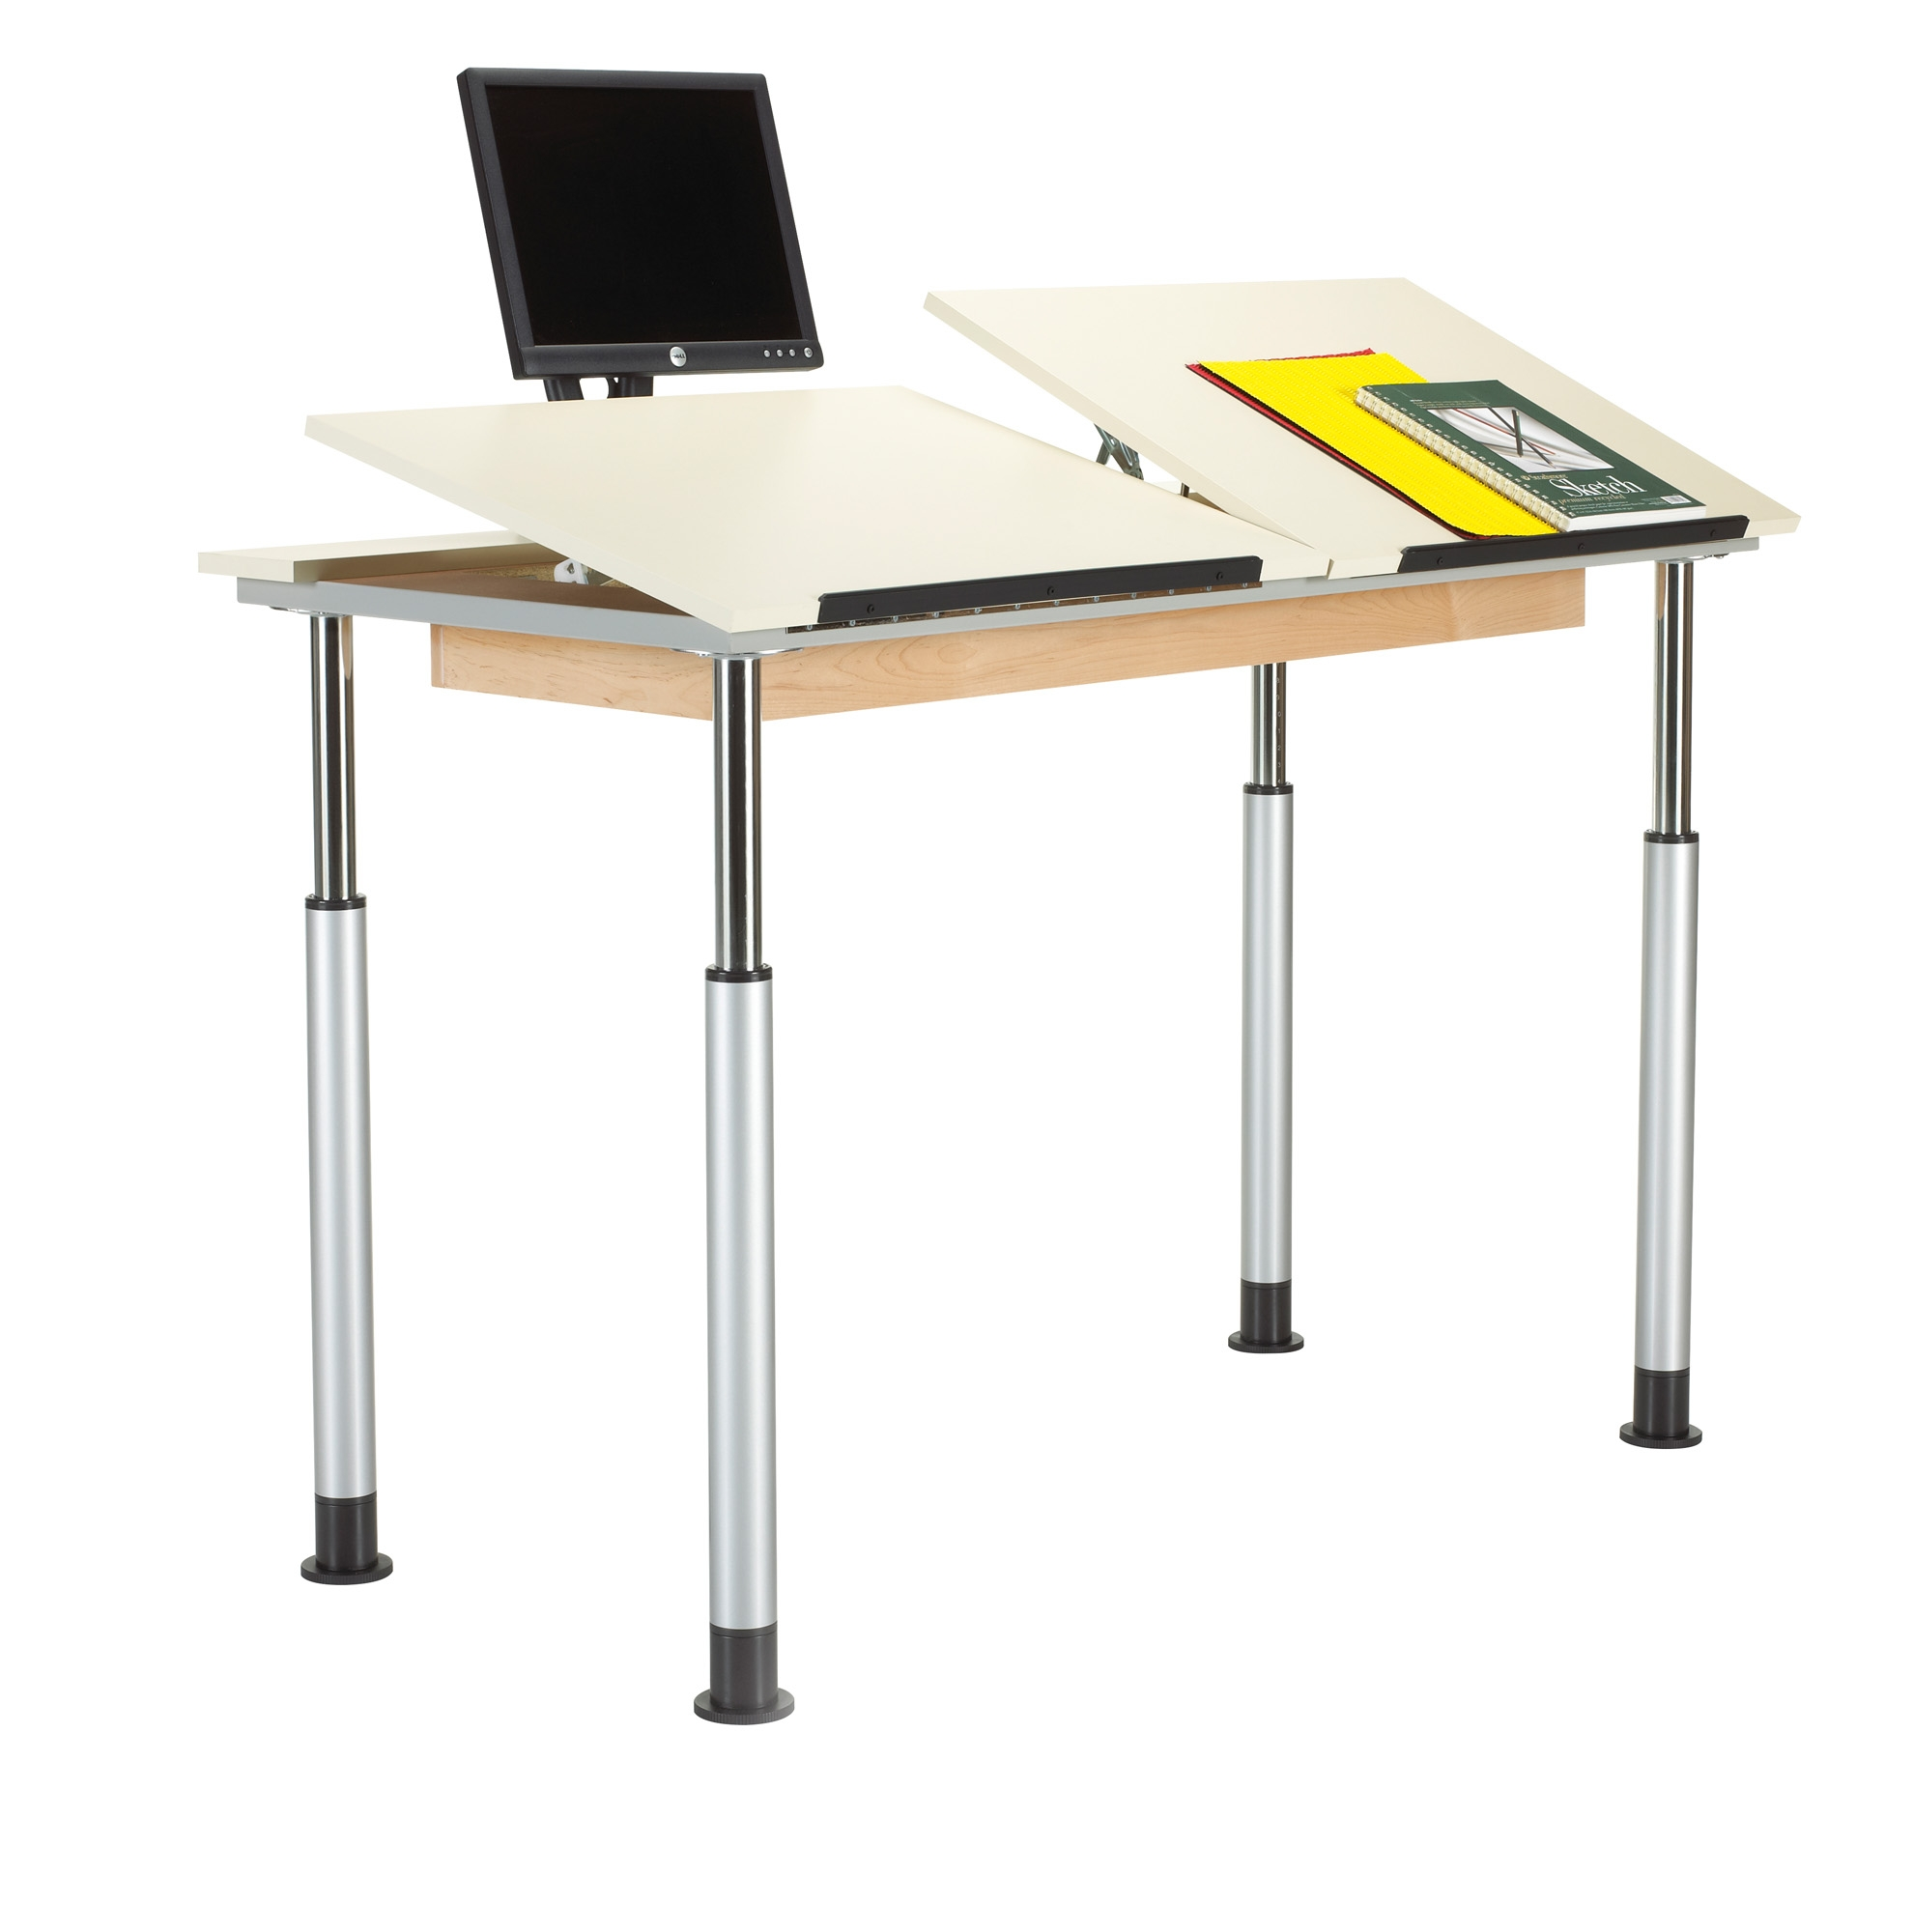 Diversified Woodcrafts Height Adjustable Drawing Table, Double Top with Rear Edge